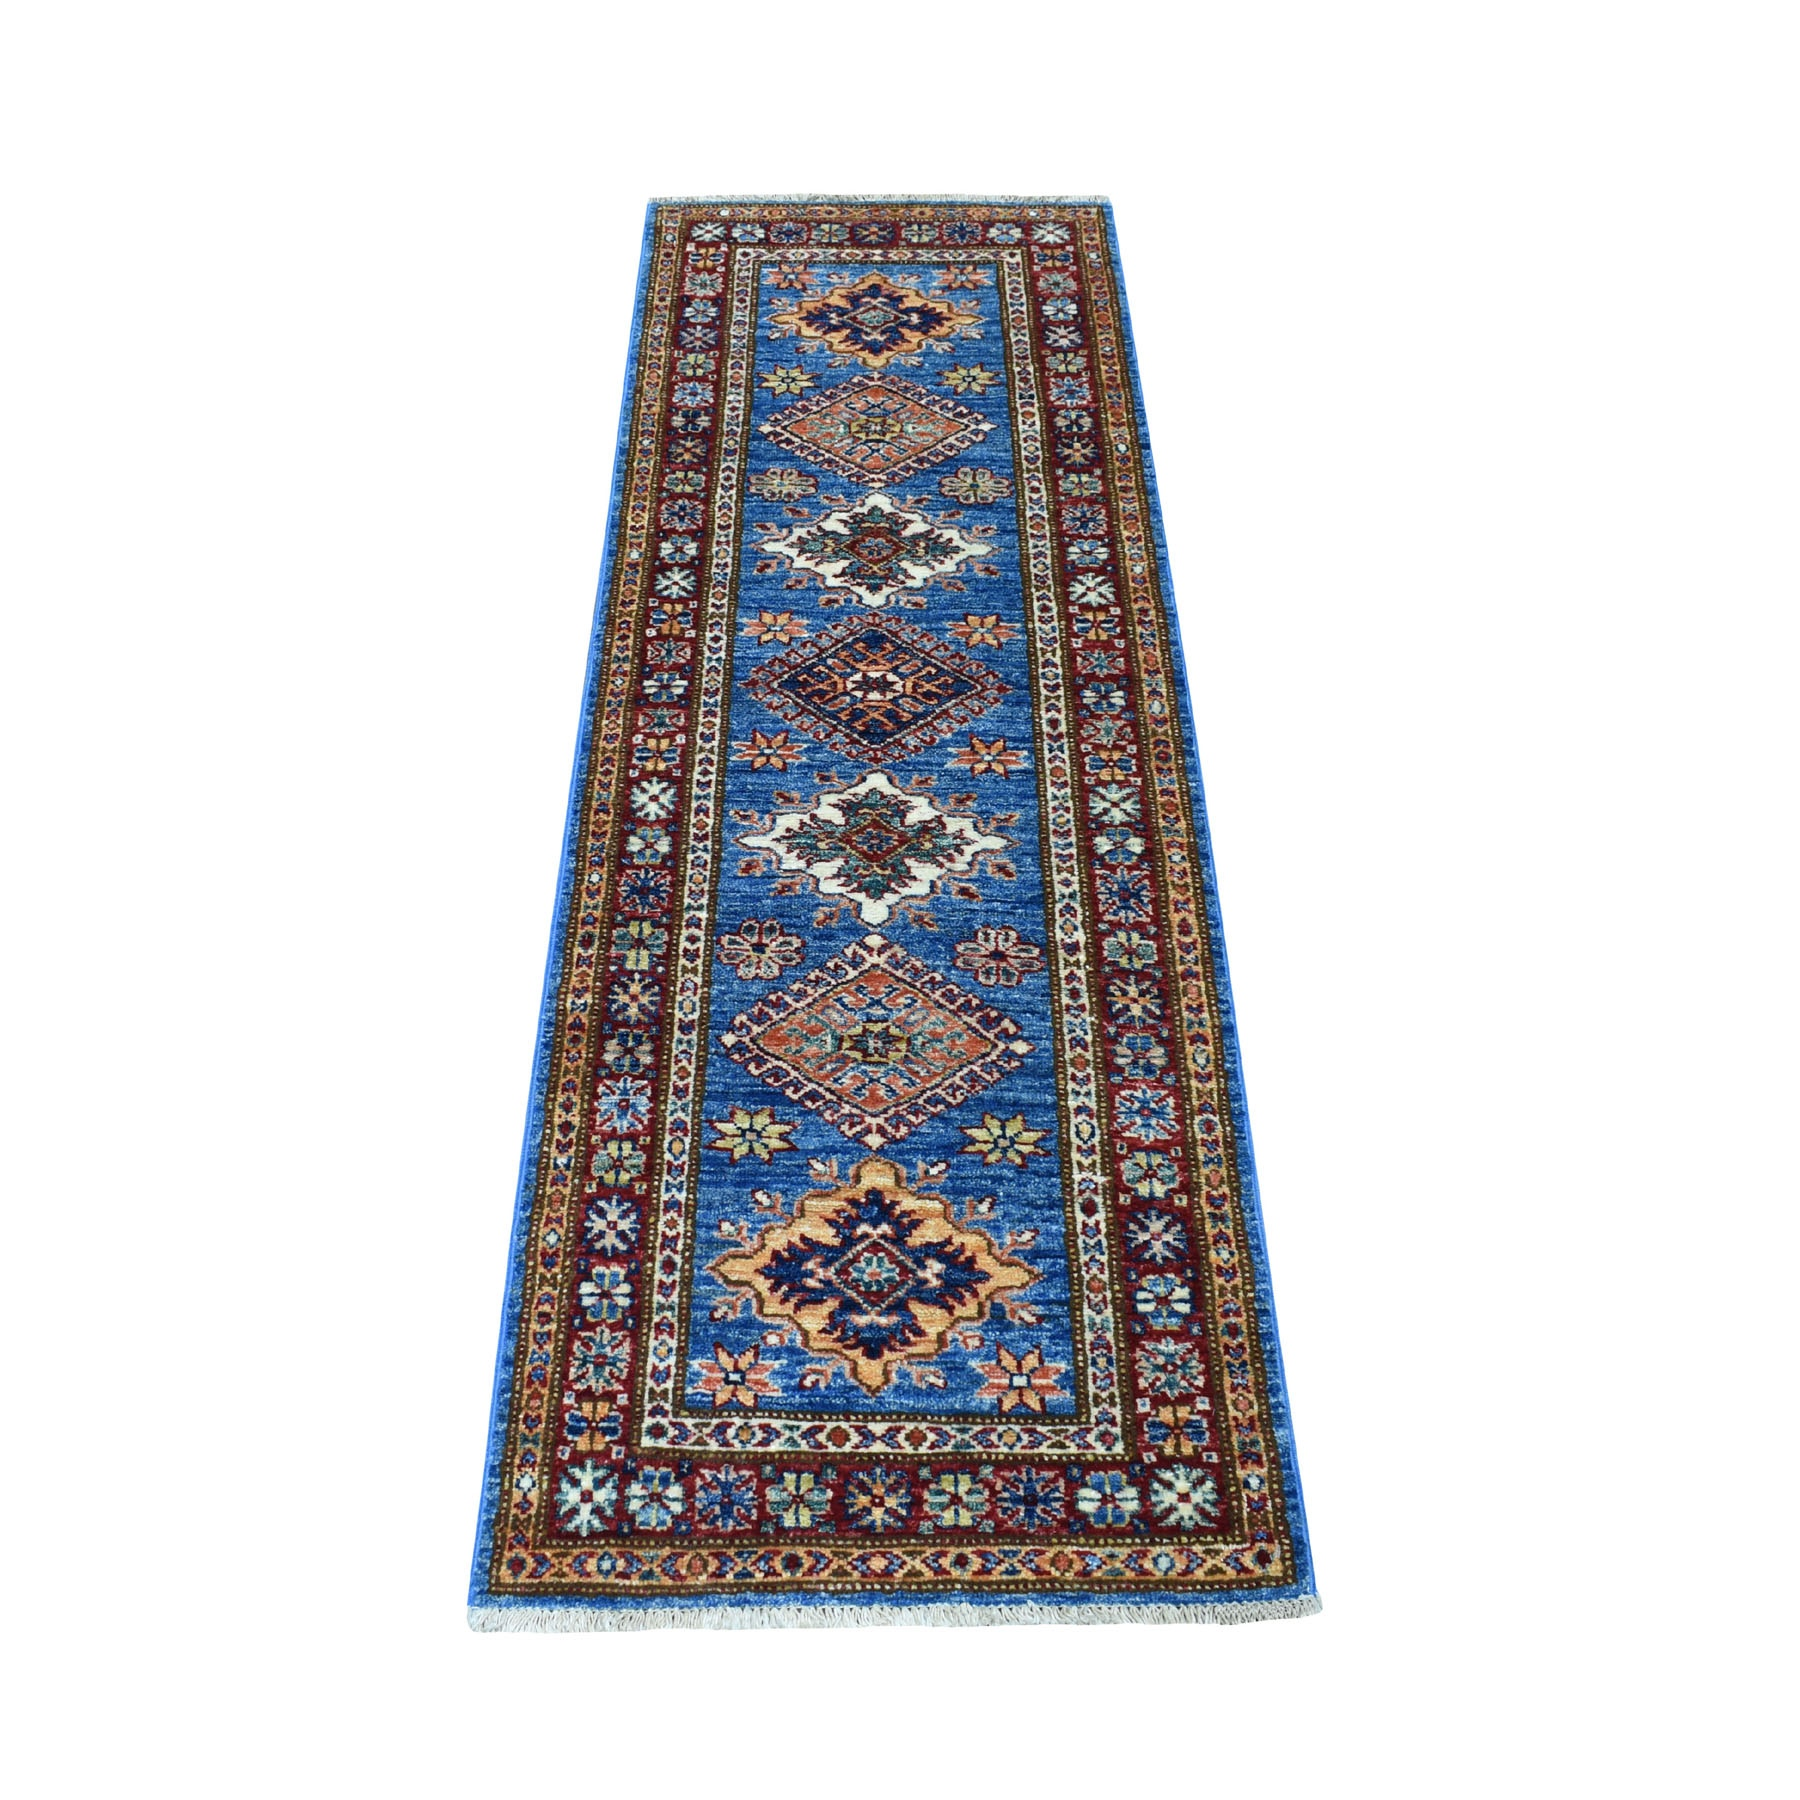 "2'x5'9"" Blue Super Kazak Tribal Design Afghan Wool Narrow Runner Hand Woven Oriental Rug"